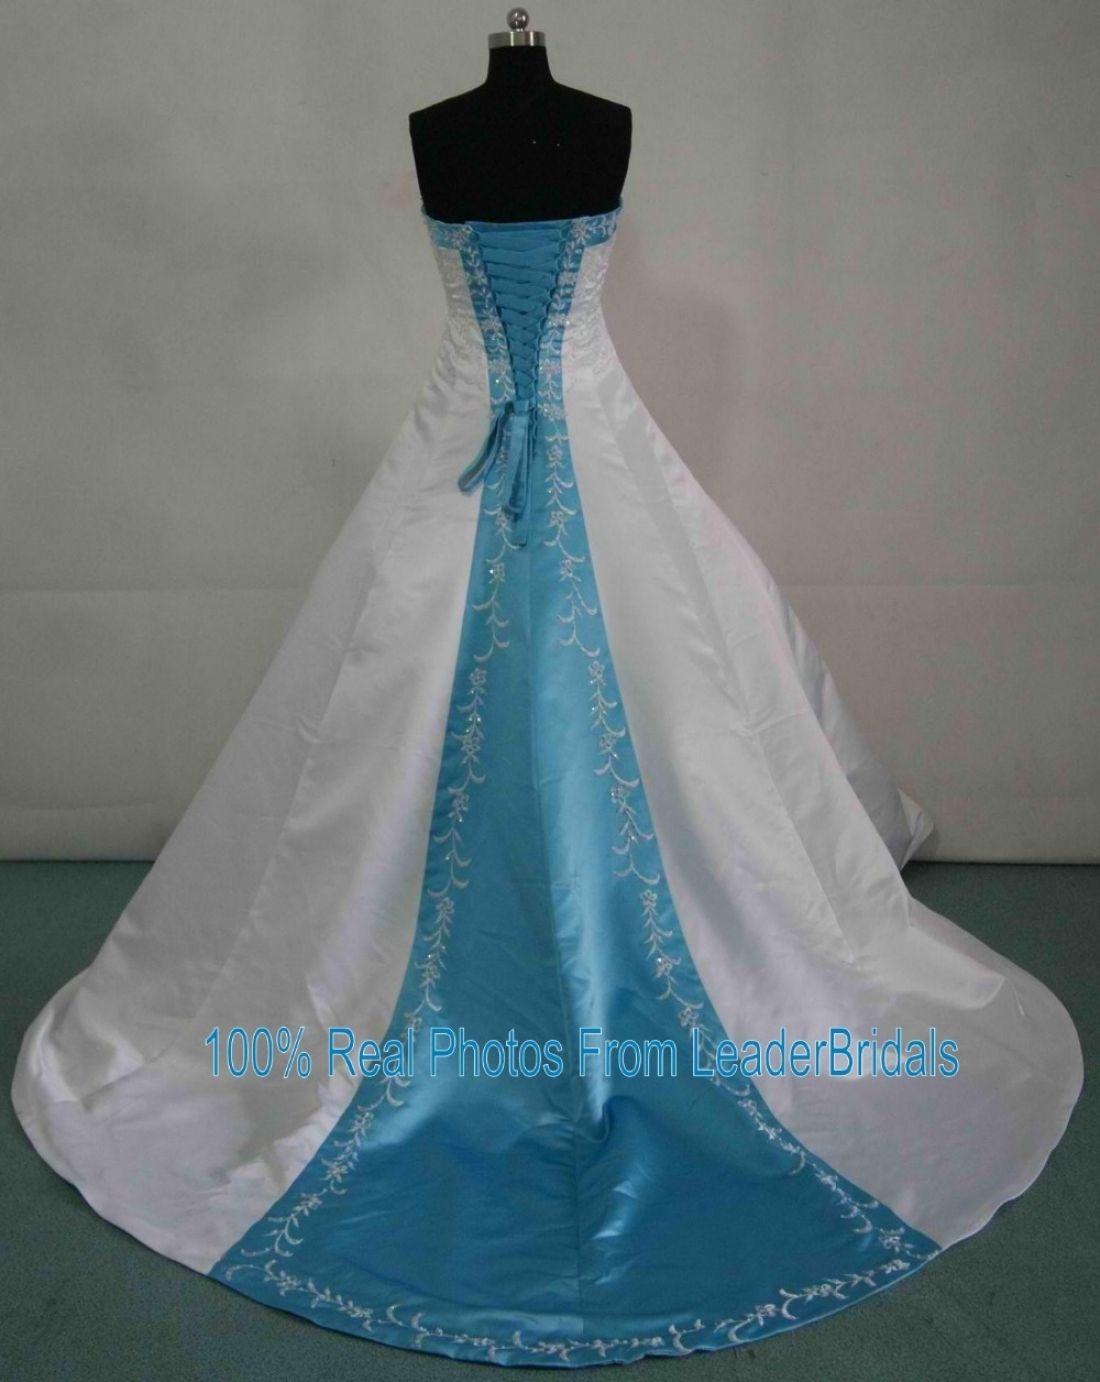 20 Most Beautiful Short White Wedding Dress Ideas For This Season Best Inspiration Alice In Wonderland Wedding Dress Baby Blue Wedding Dresses Turquoise Wedding Dresses [ 1382 x 1100 Pixel ]